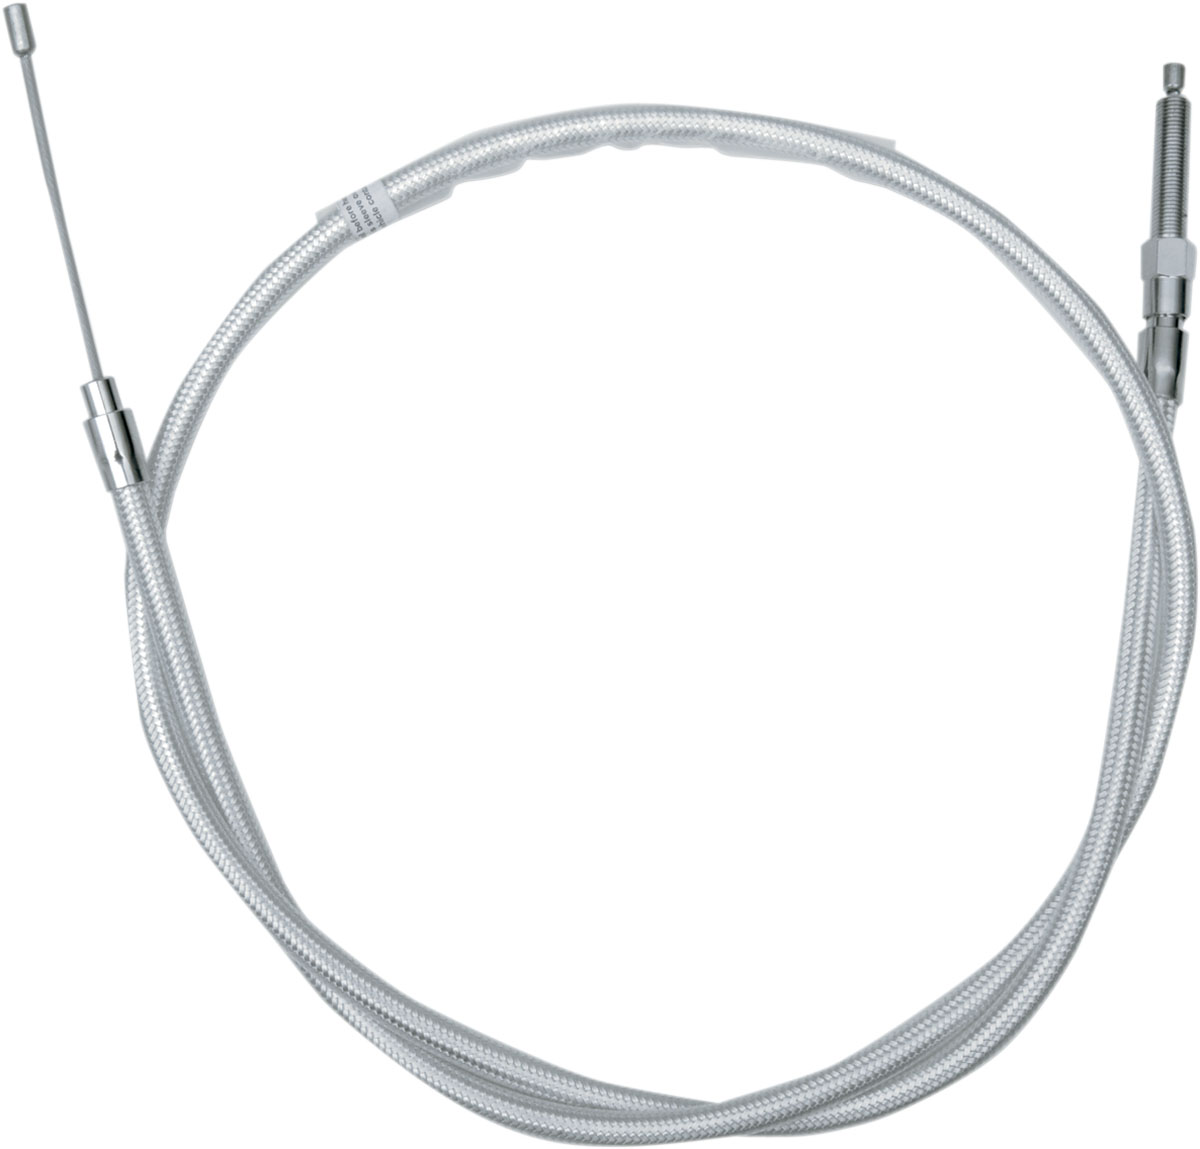 Sterling Chromite II High Efficiency Braided Clutch Cable